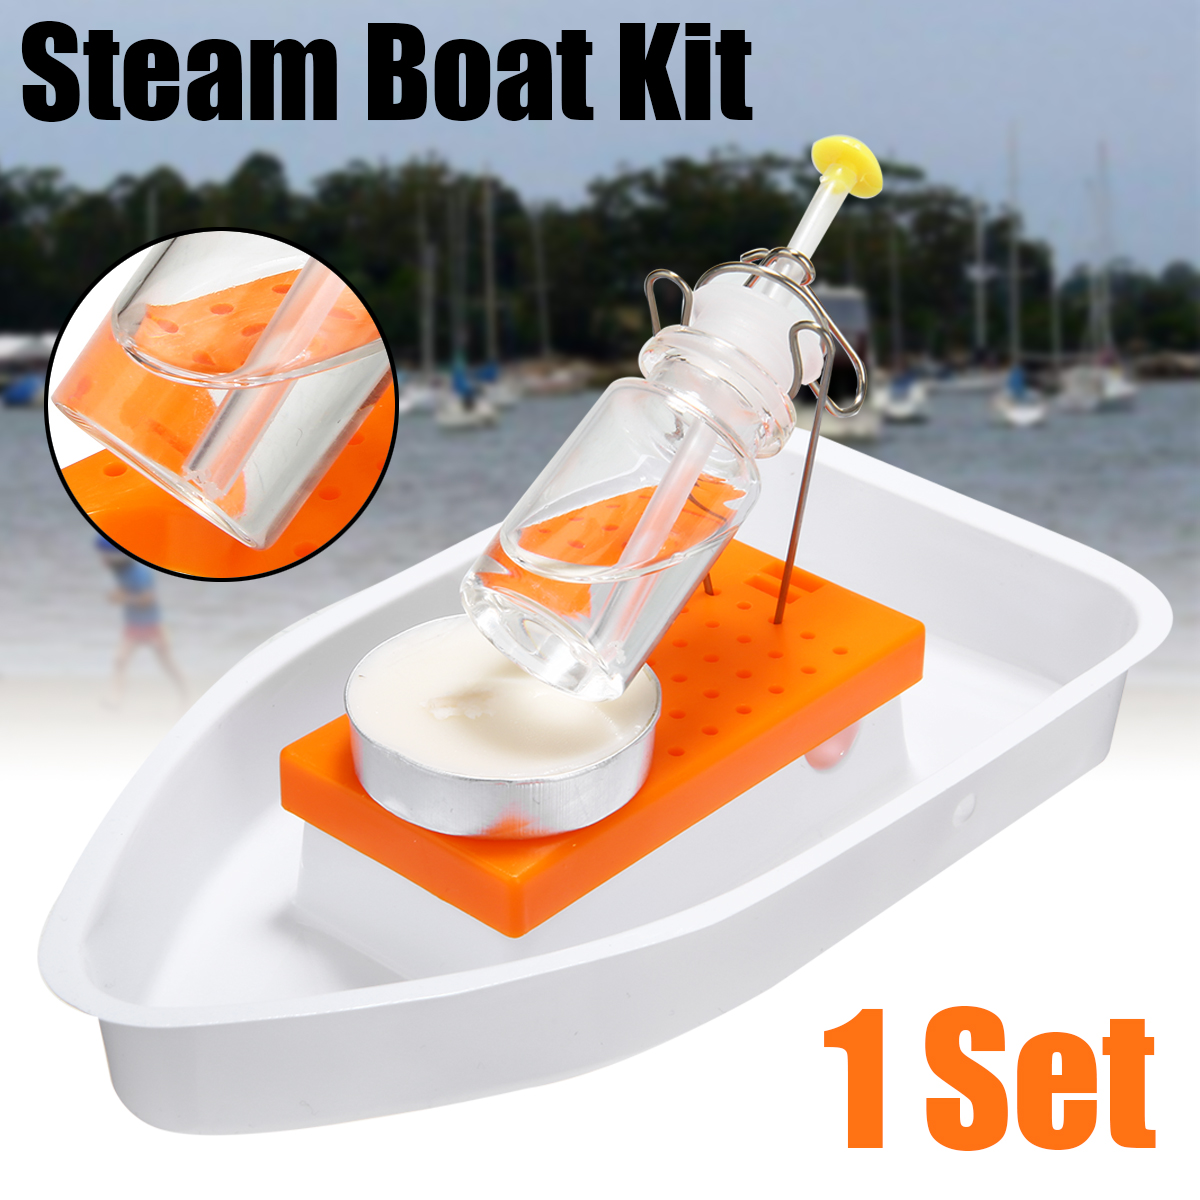 Steam Boat DIY Steam Boat Kit Candle Powered Steam Boat Toy Physics Science Experiment DIY Assembly Boat Building Kits